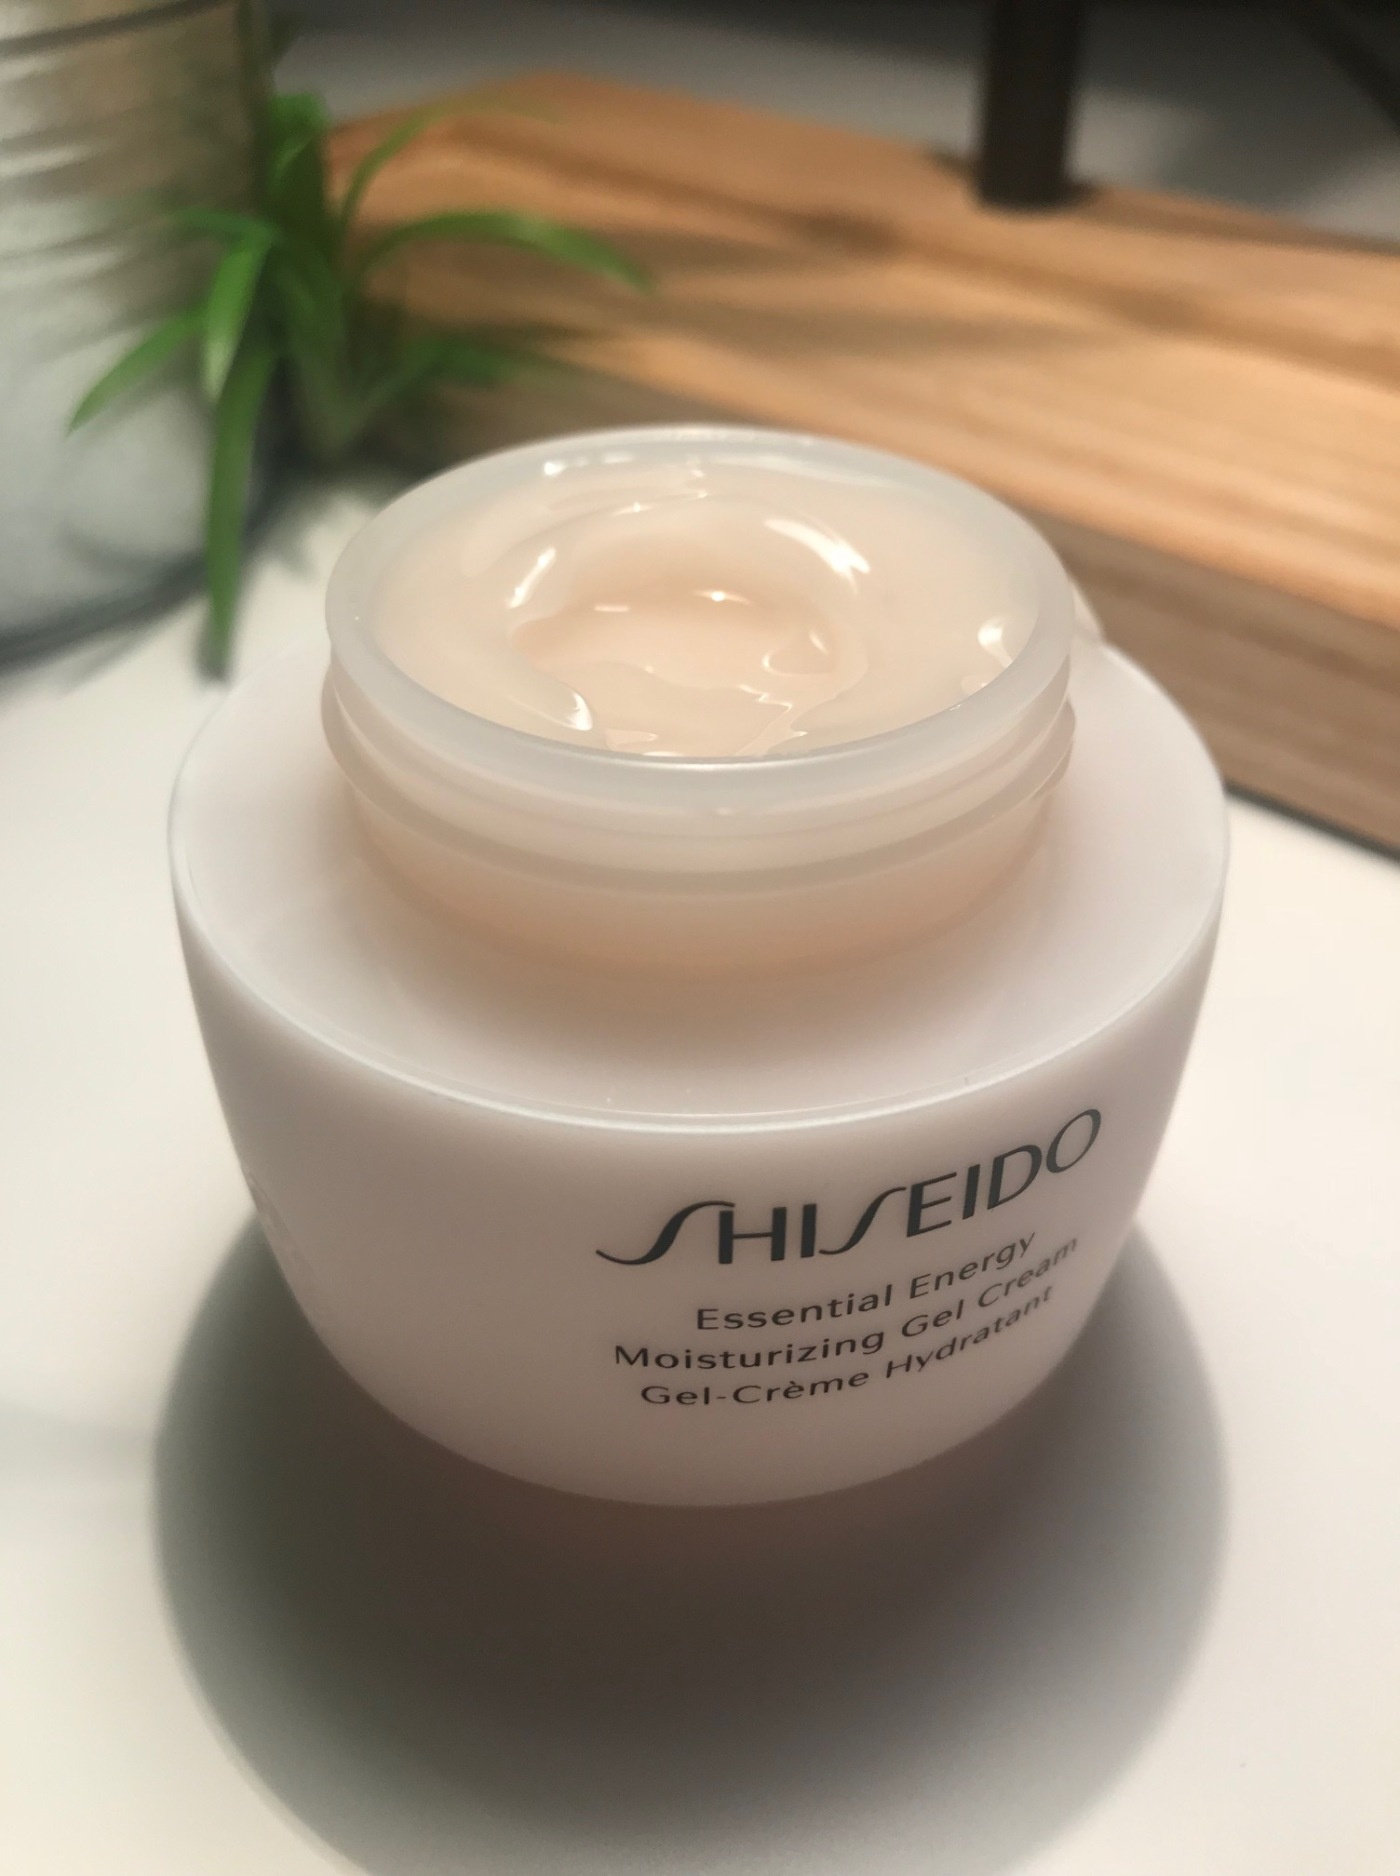 shiseido_essential_energy_gel_cream